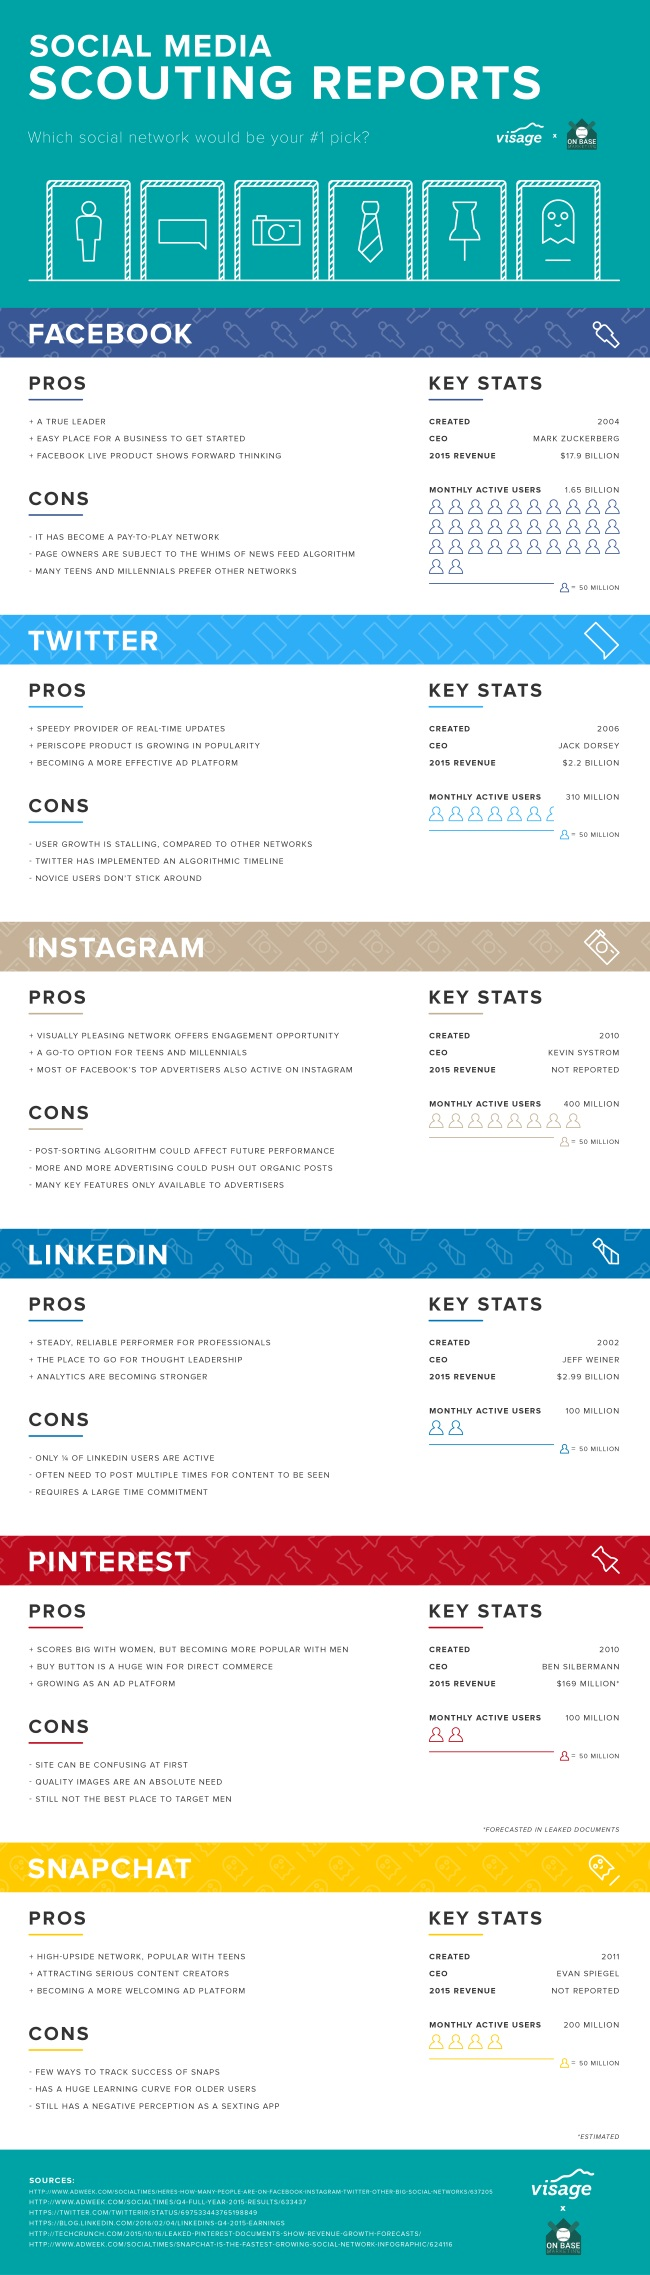 pros-cons-social-networks-infographic